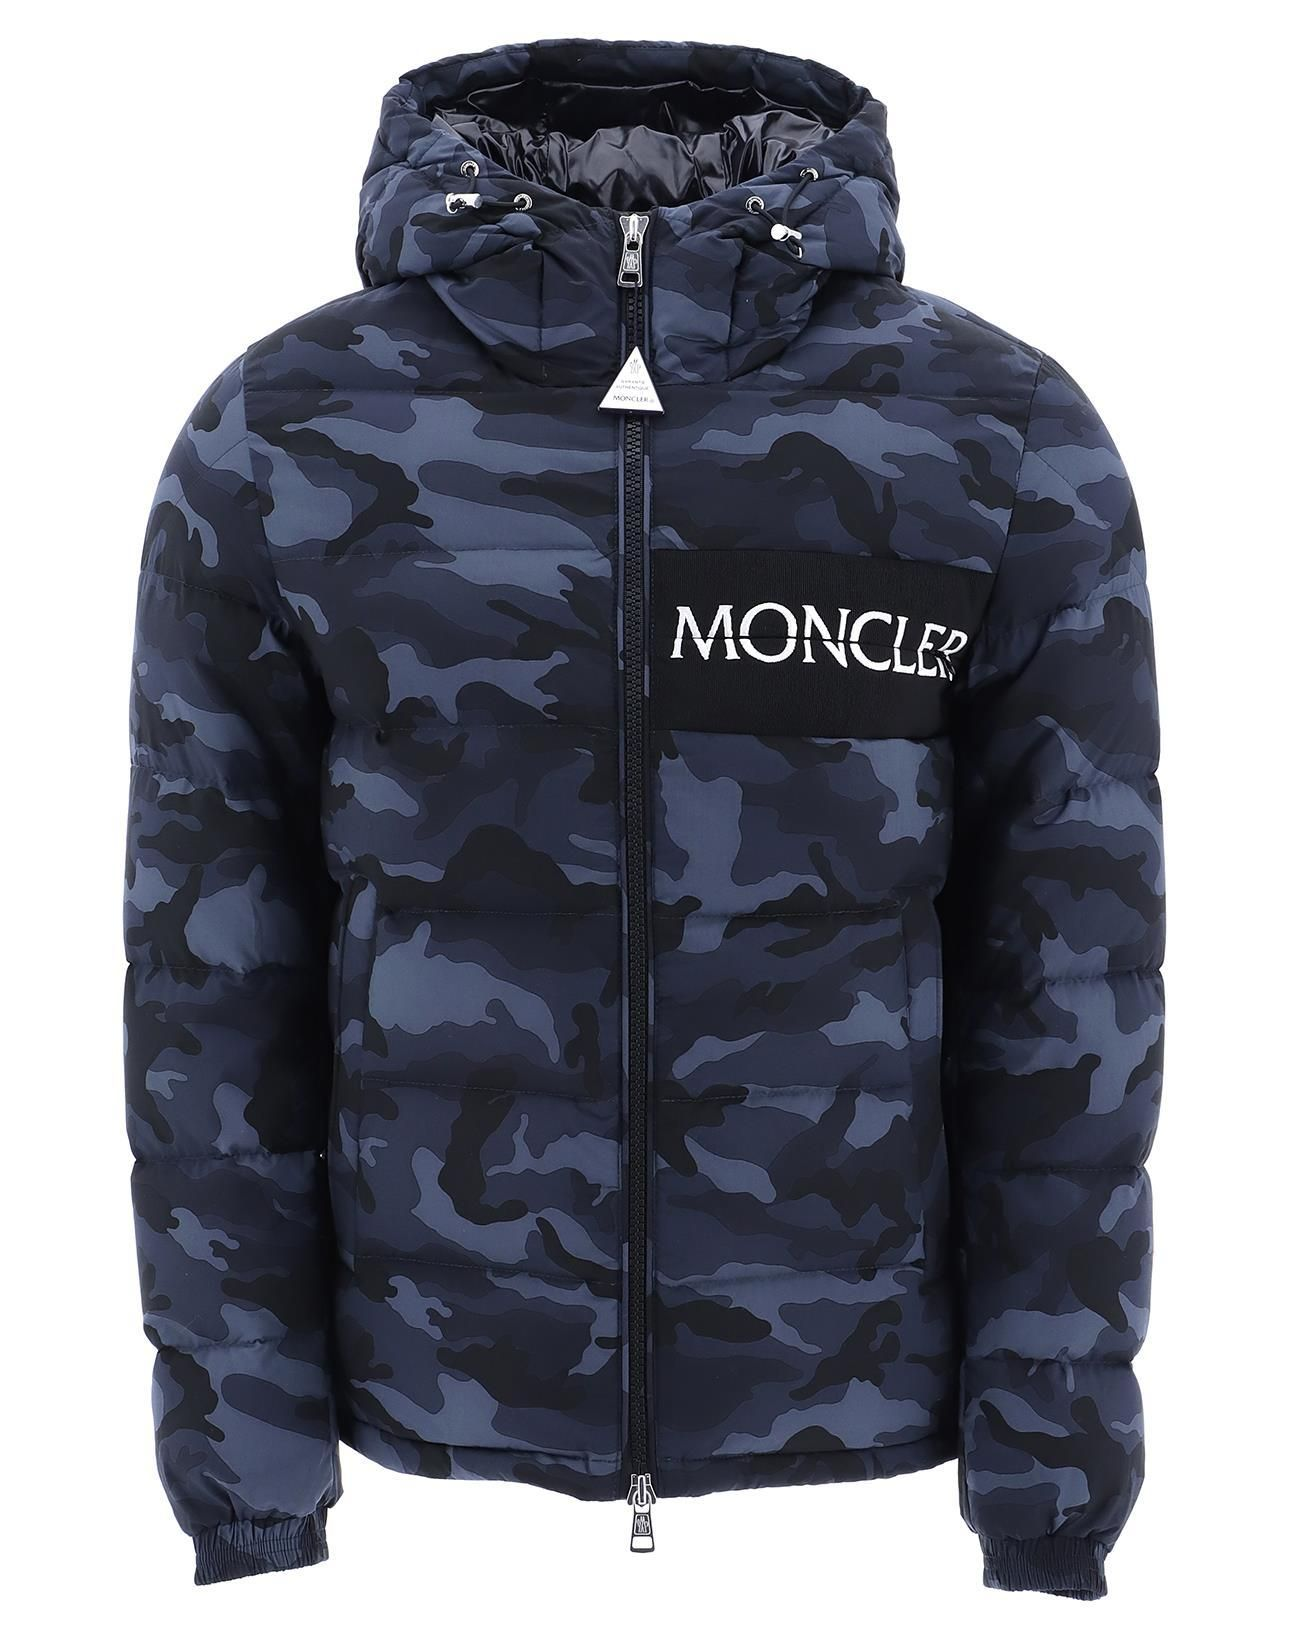 MONCLER MONCLER AITON CAMOUFLAGE PRINT DOWN JACKET.